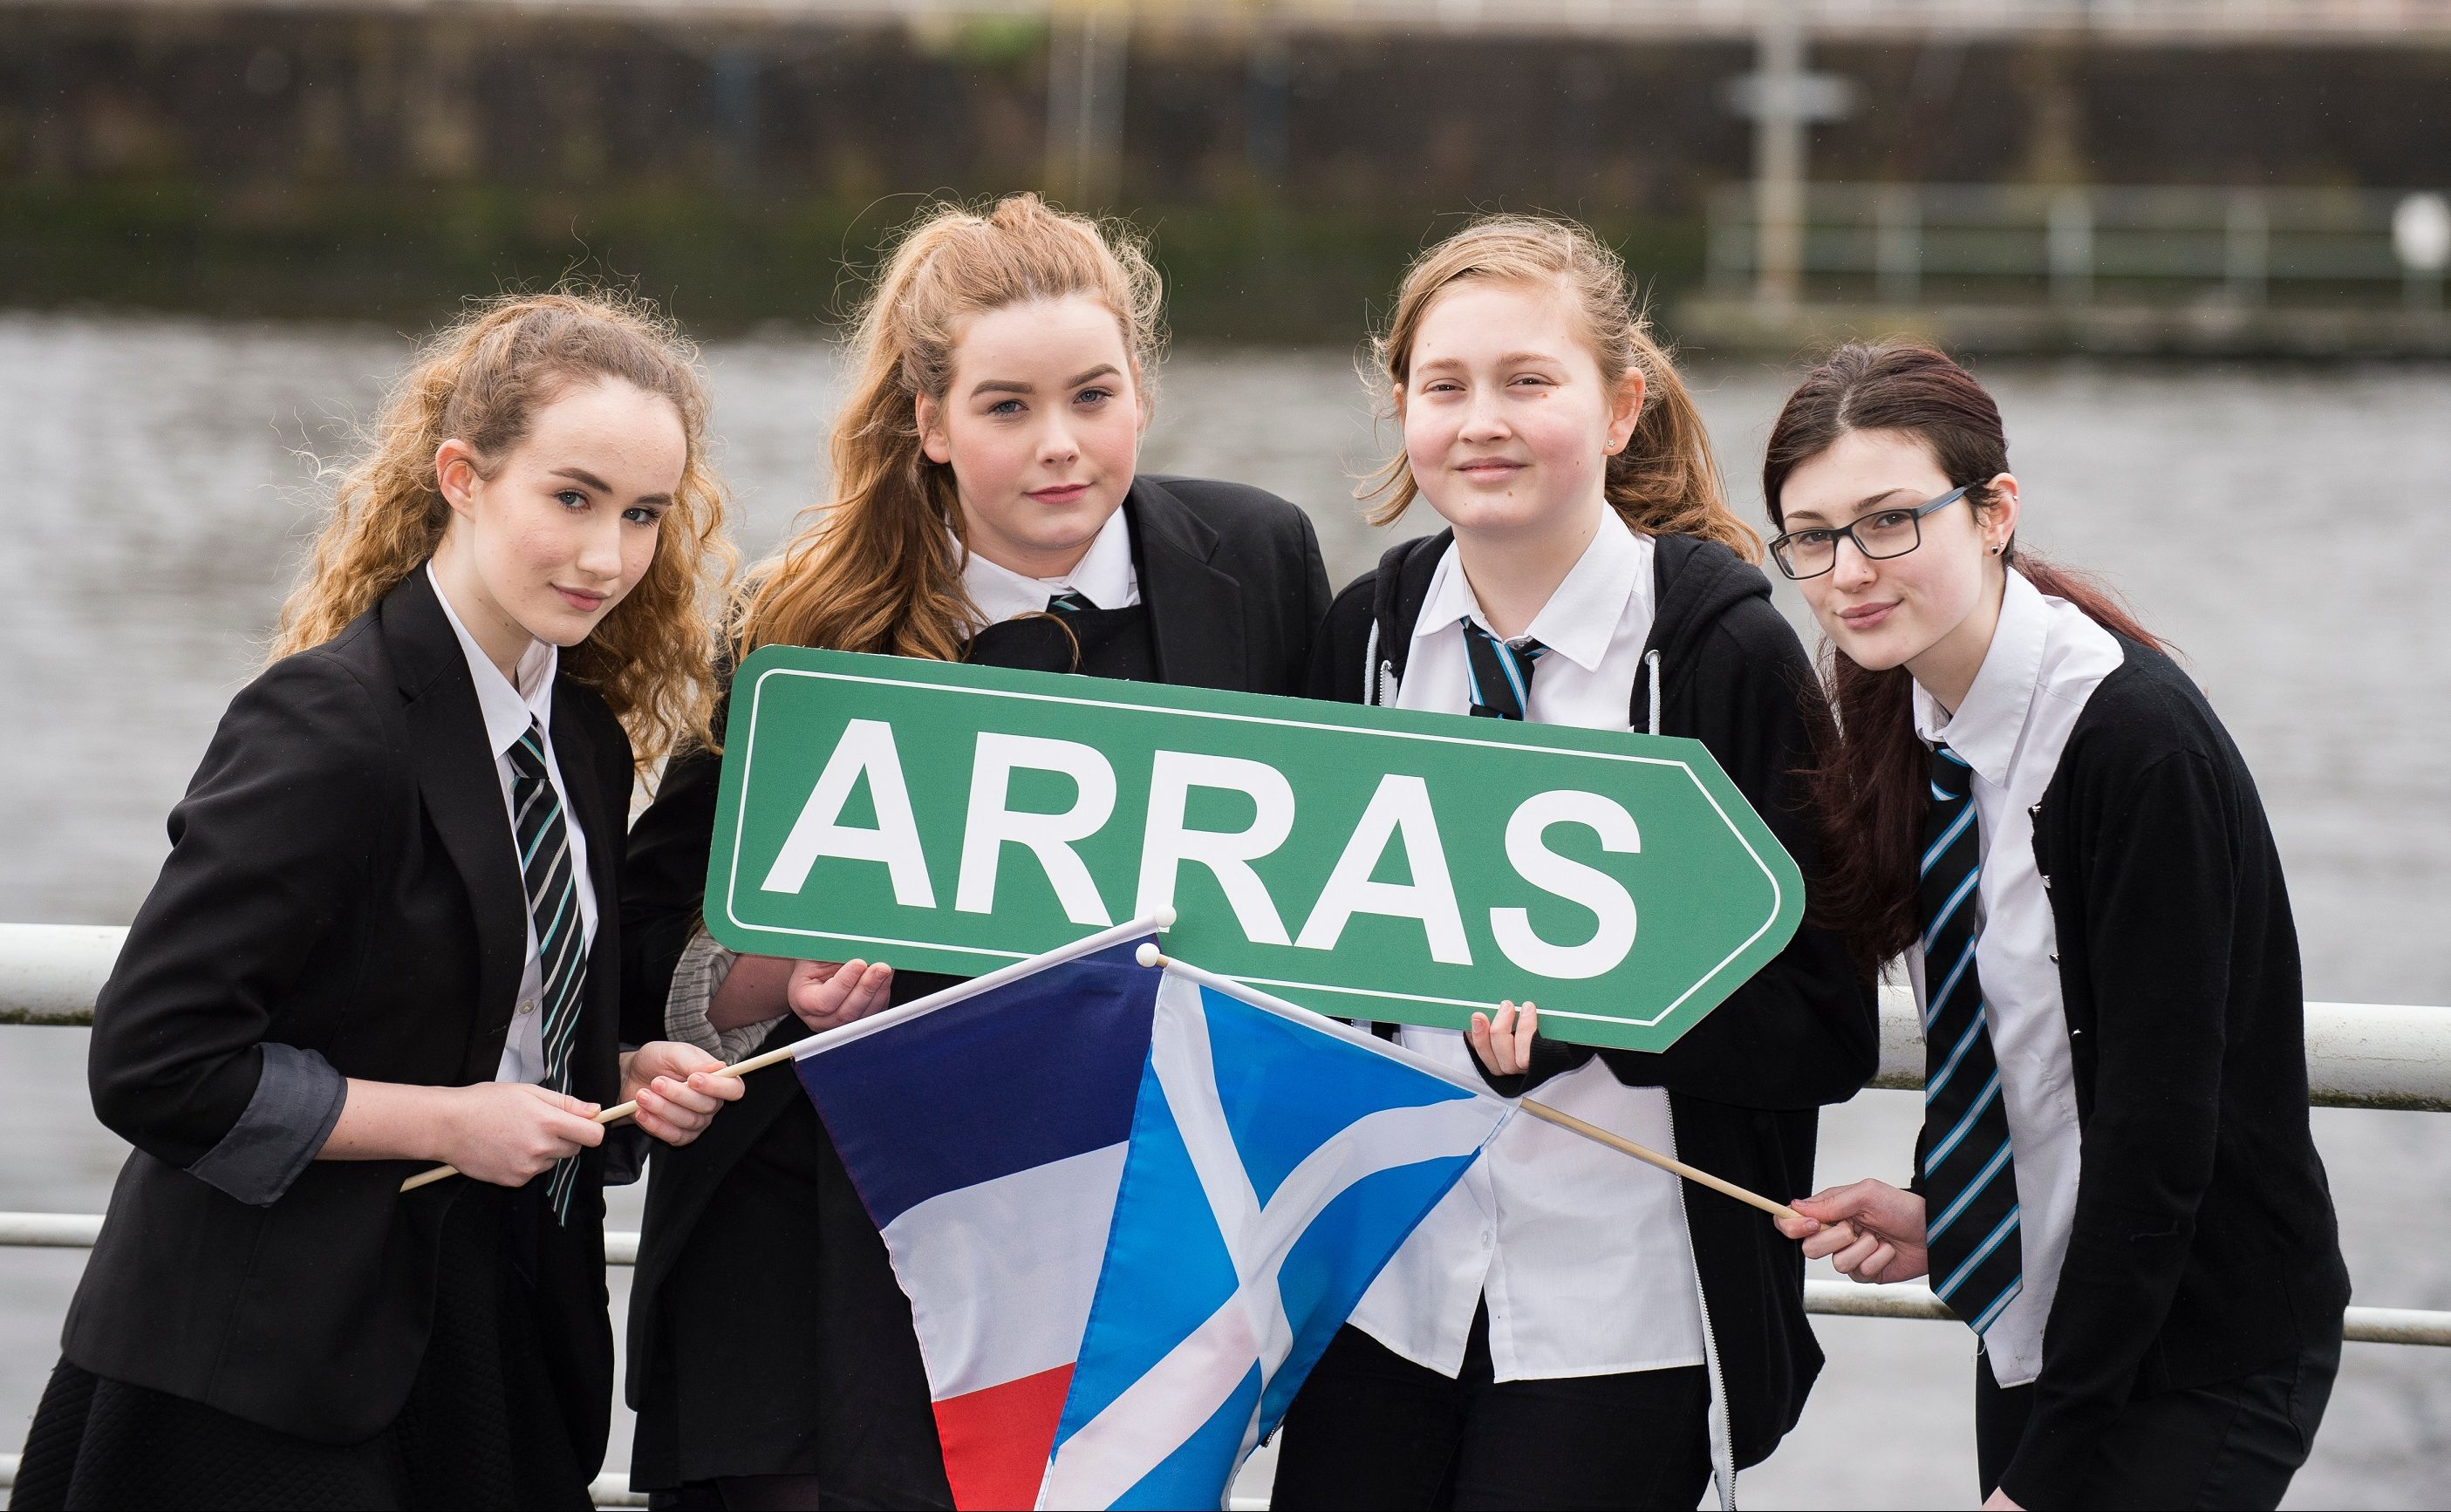 Left to right,  Amy Collins, Elizabeth Green, Eilidh Campbell, Emily Gough.